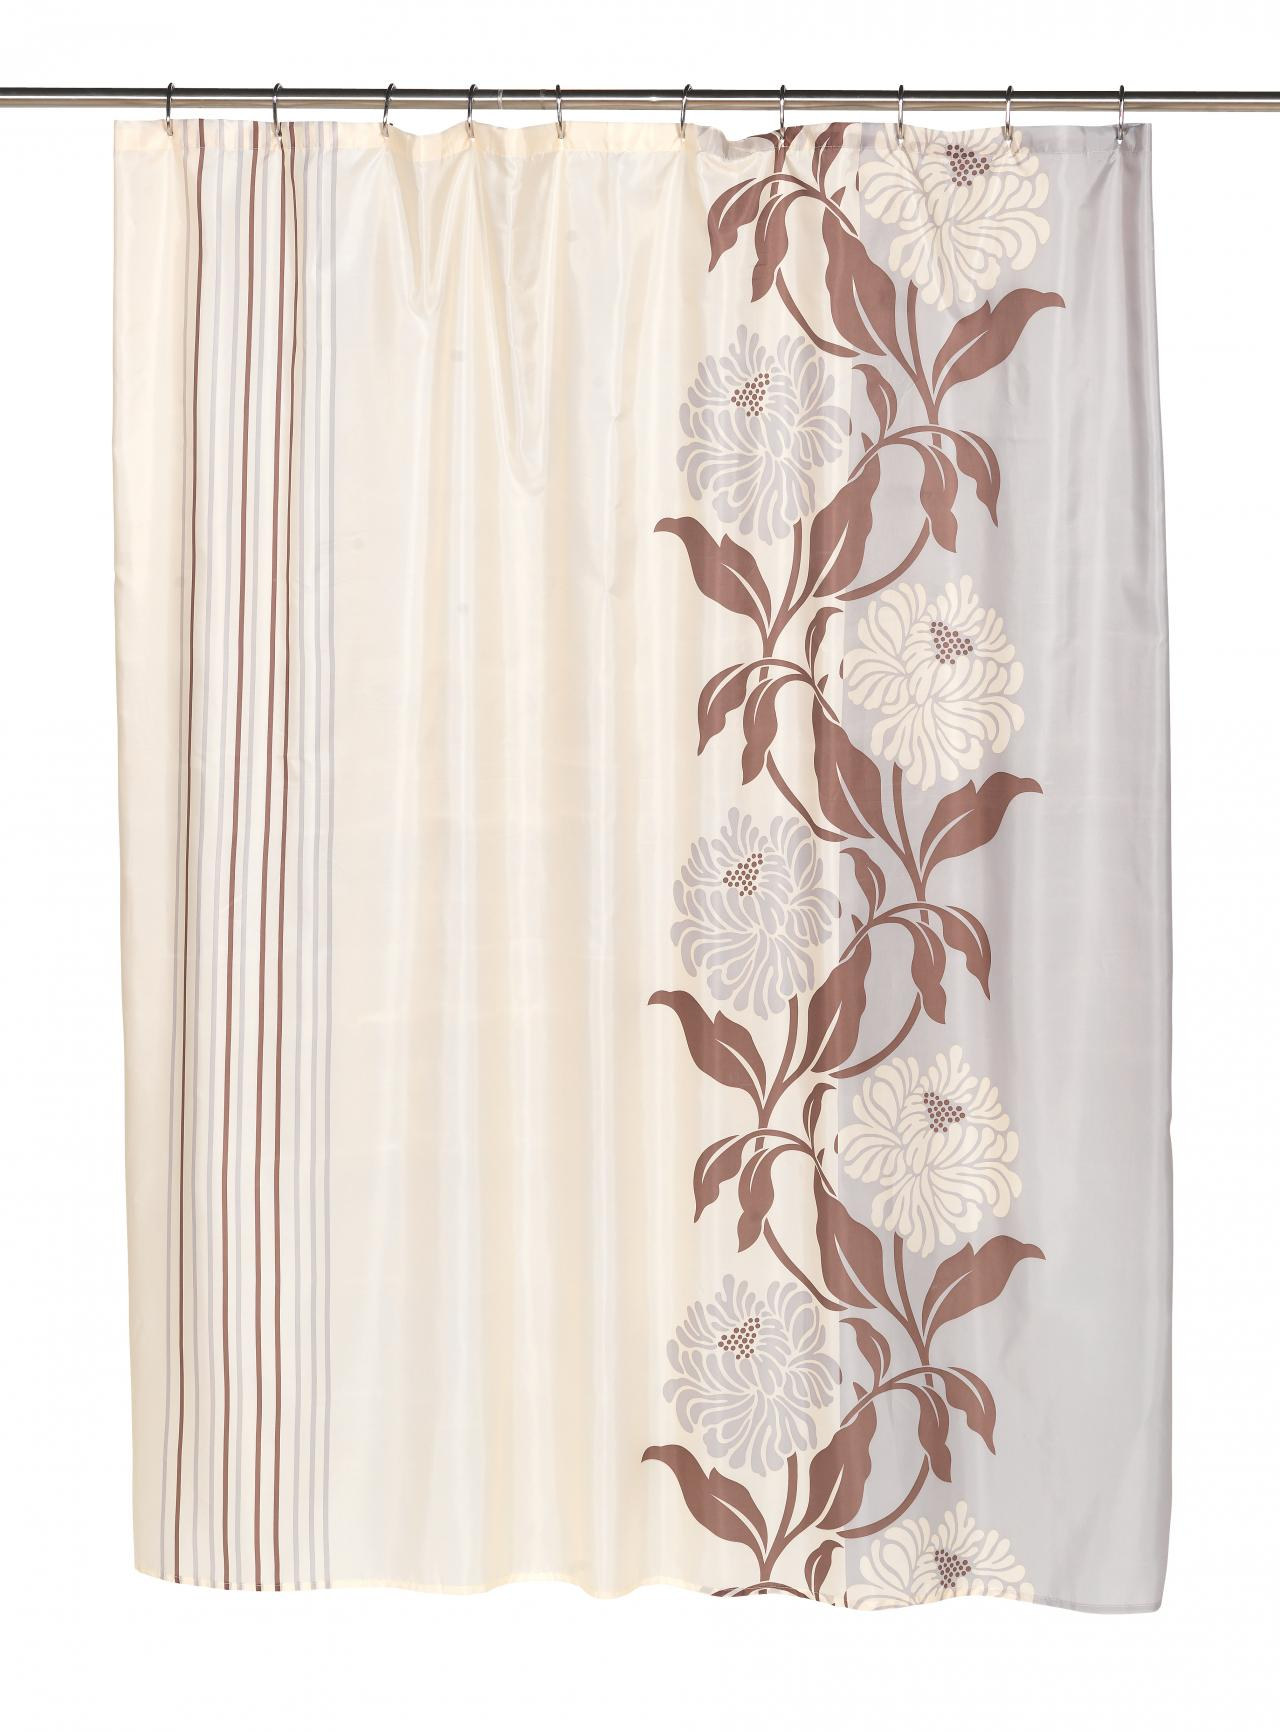 resistant shower water fabric by kitchen dp amazon home curtains x repellent curtain white com liner carnation